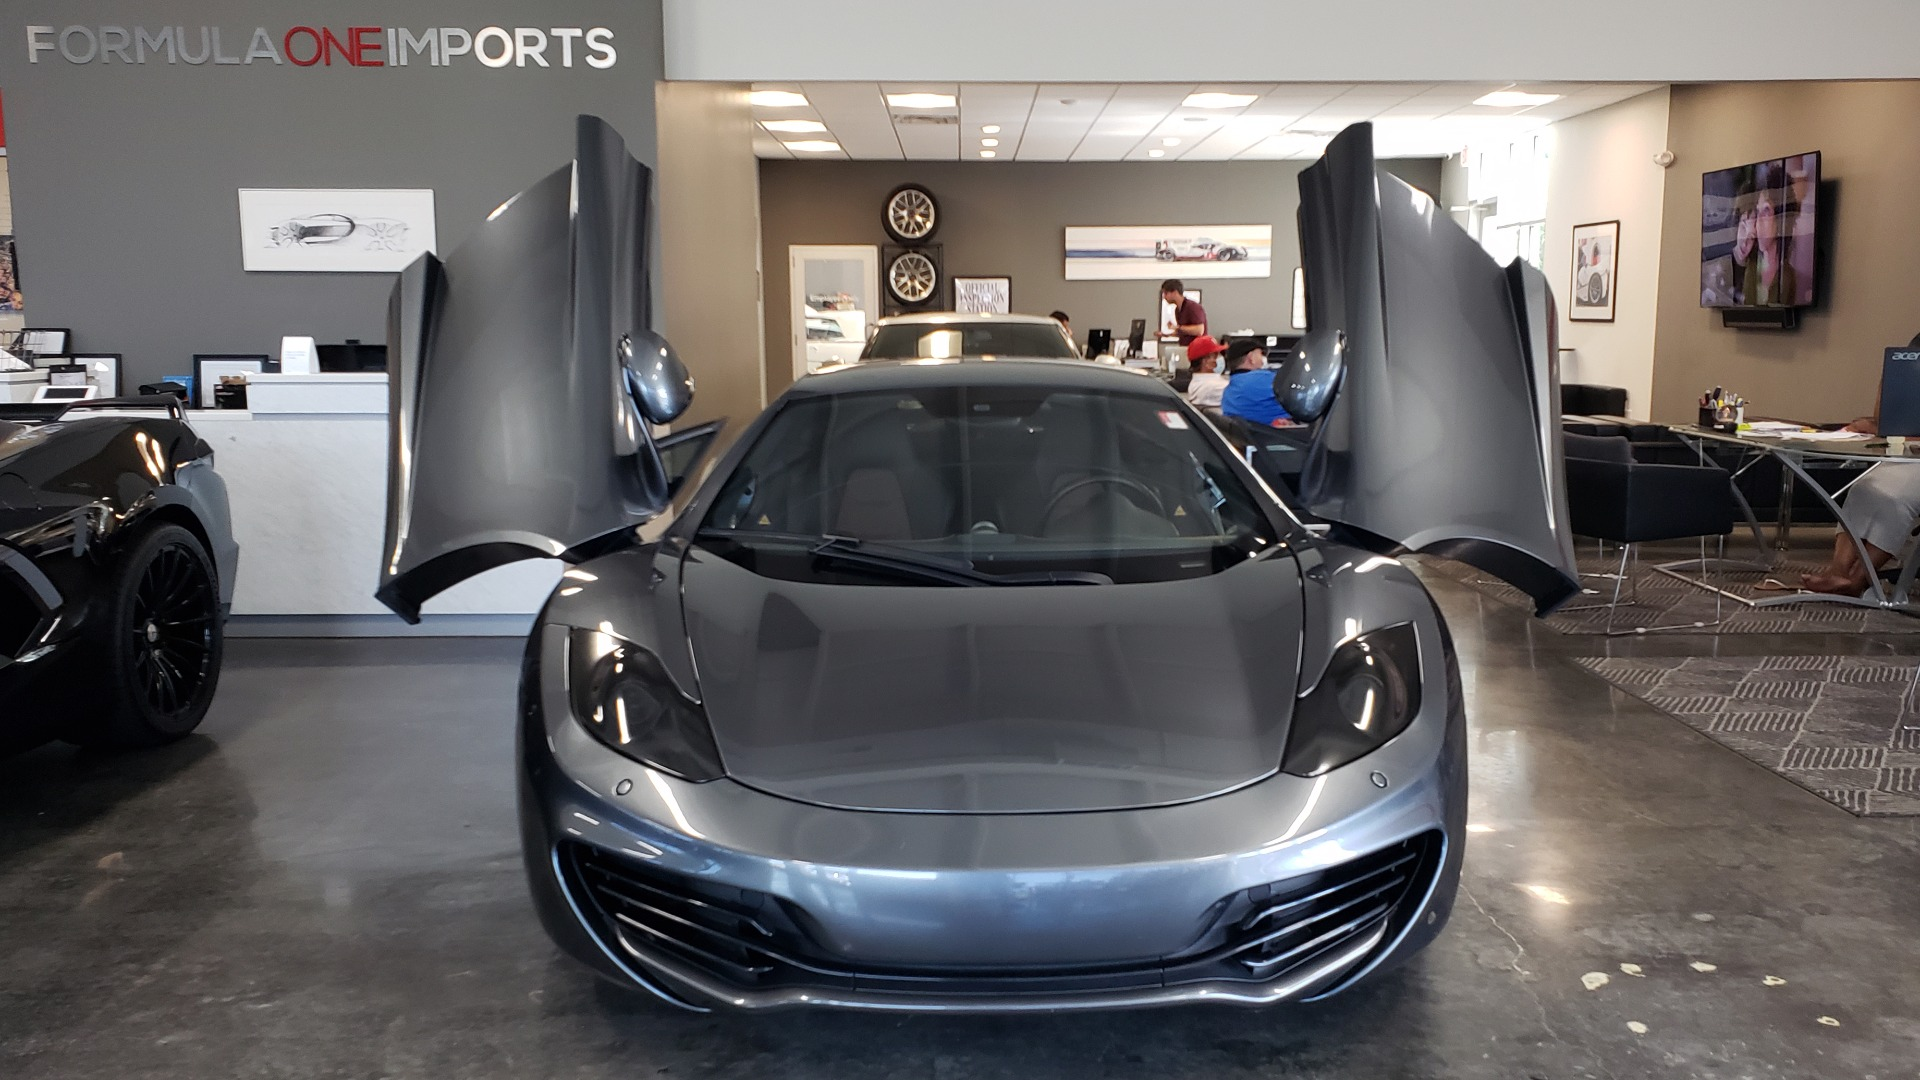 Used 2012 McLaren MP4-12C COUPE / 3.8 L V8 592HP / AUTO / NAV / CCB / LOW MILES for sale $97,999 at Formula Imports in Charlotte NC 28227 50